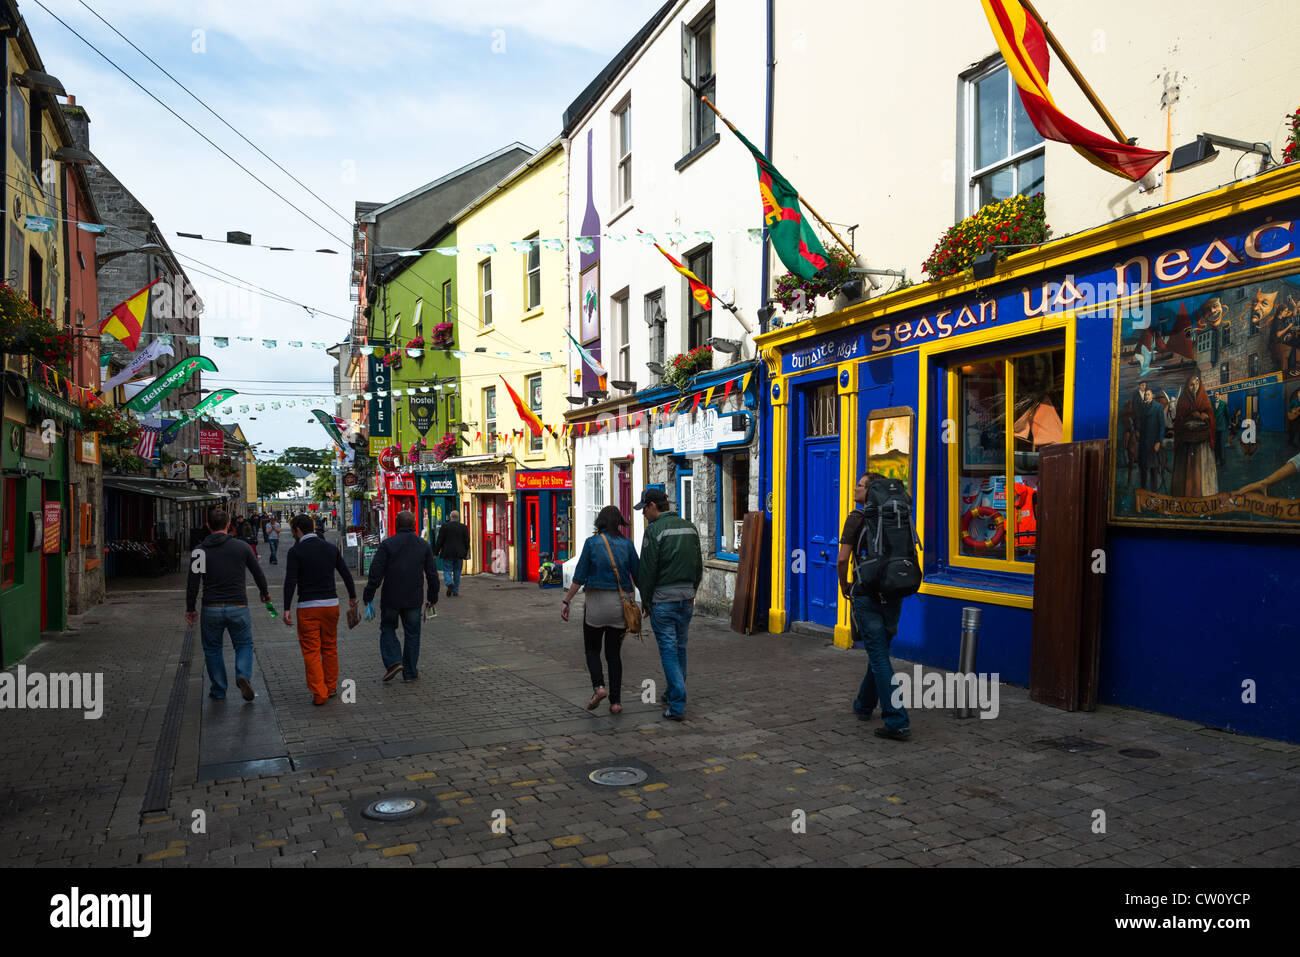 Colourful shops in the Latin quarter of Galway City, County Galway, Ireland. - Stock Image